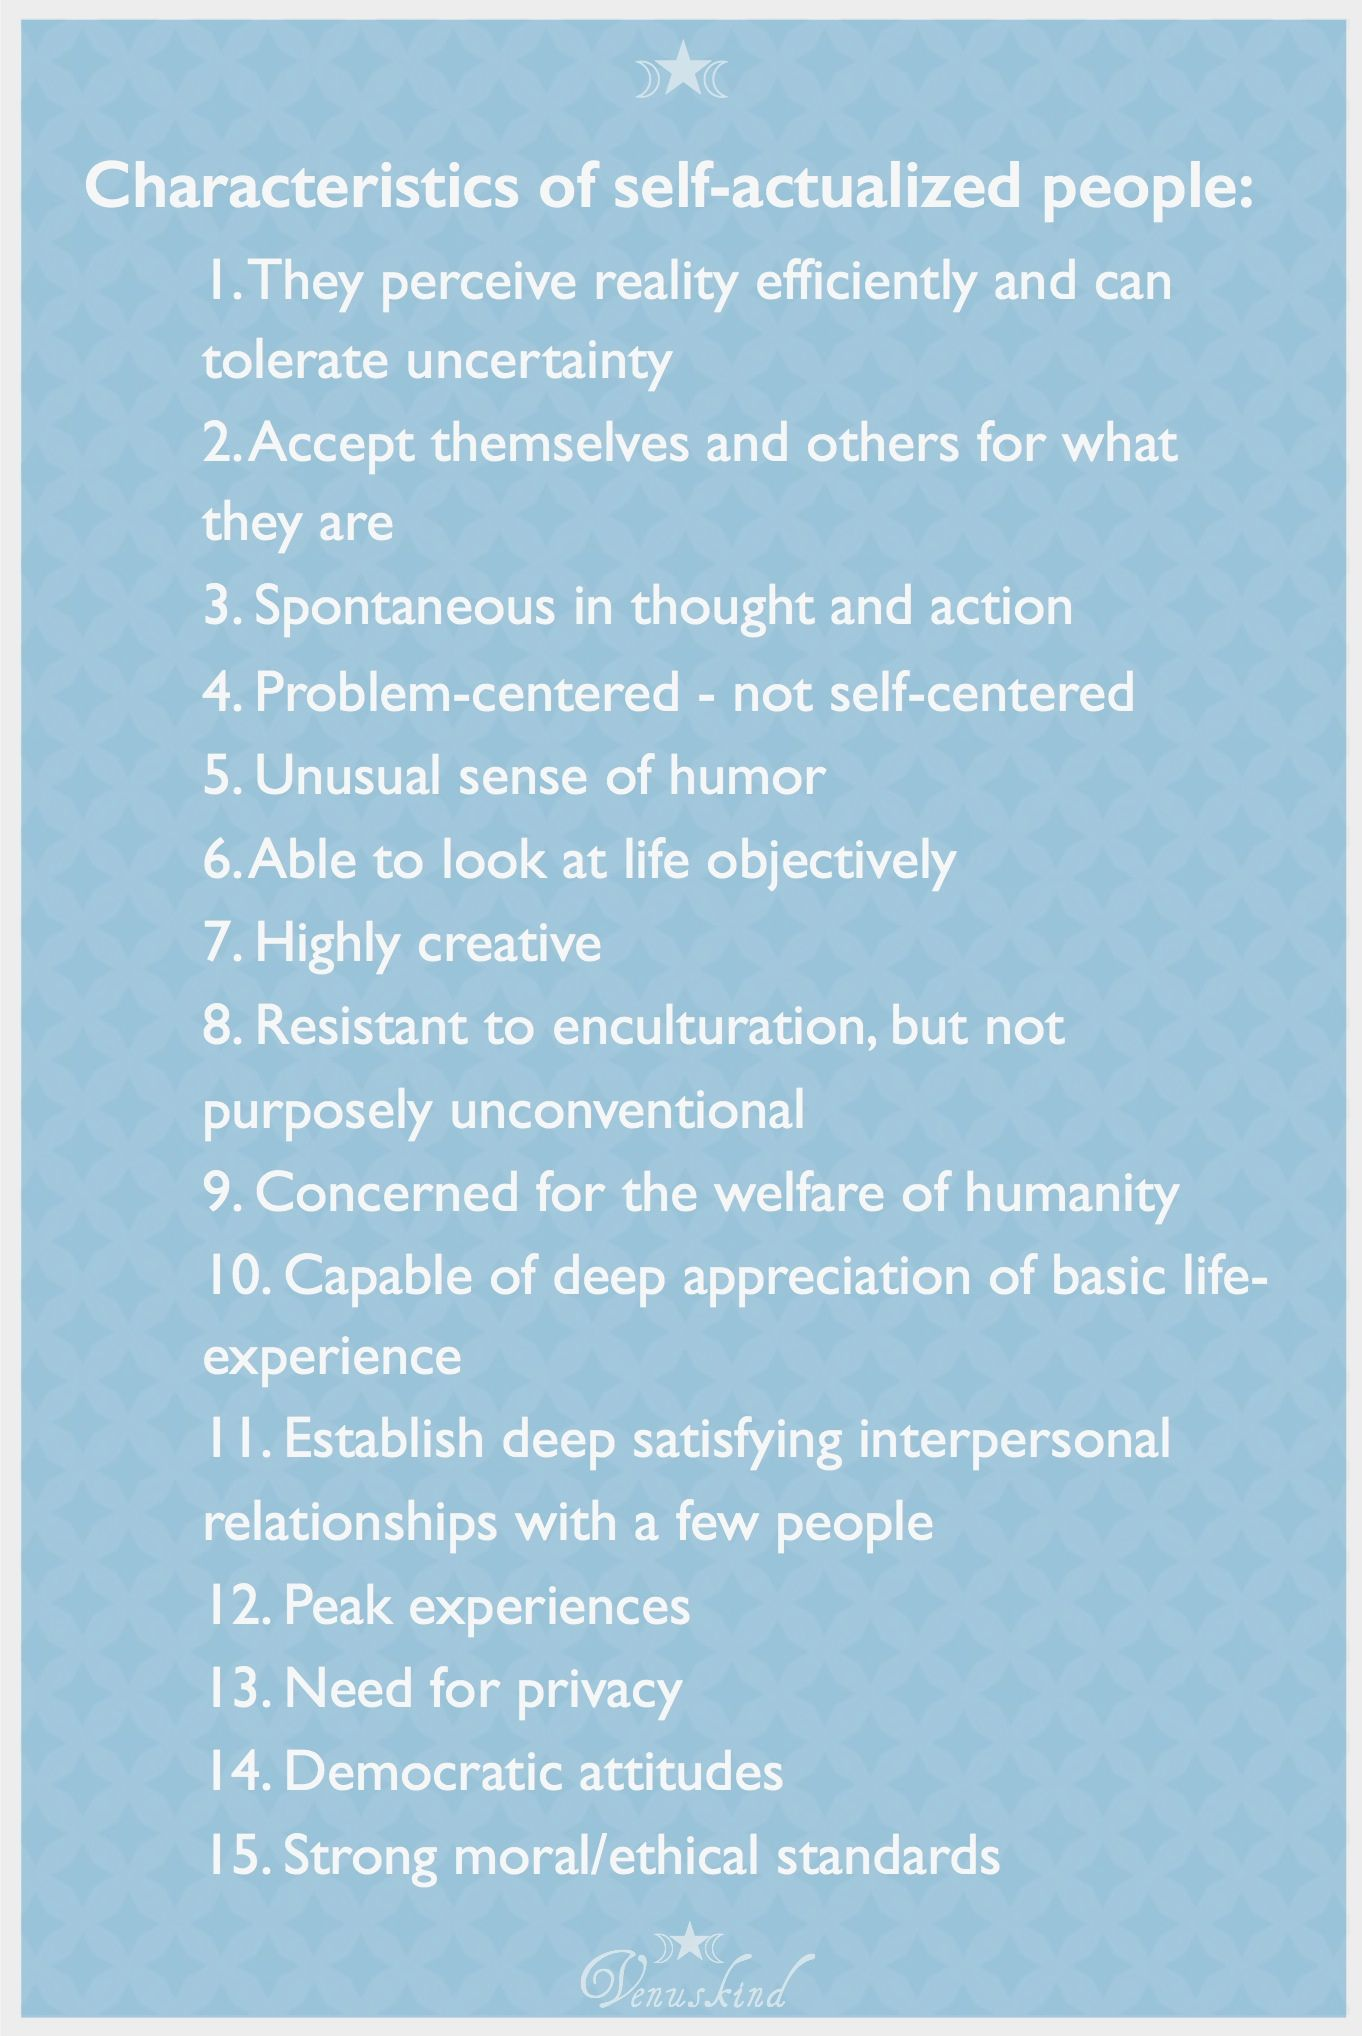 Characteristics of a Self-Actualizing Person